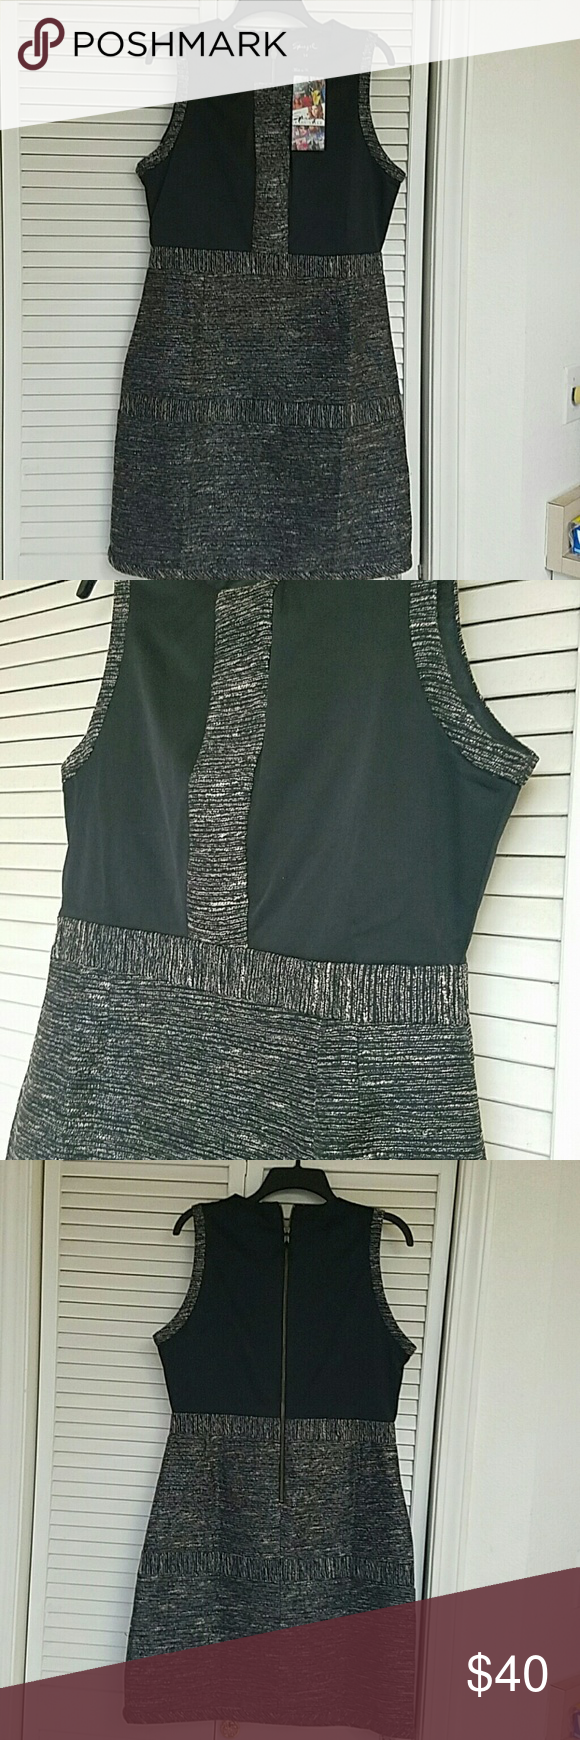 NWT Knee Length Black & Burlap Fabric Dress This dress is adorable and a must have!!!! The fit is perfect.....wear for any occasion......work, play or evening!! Brand new with tags. Dresses